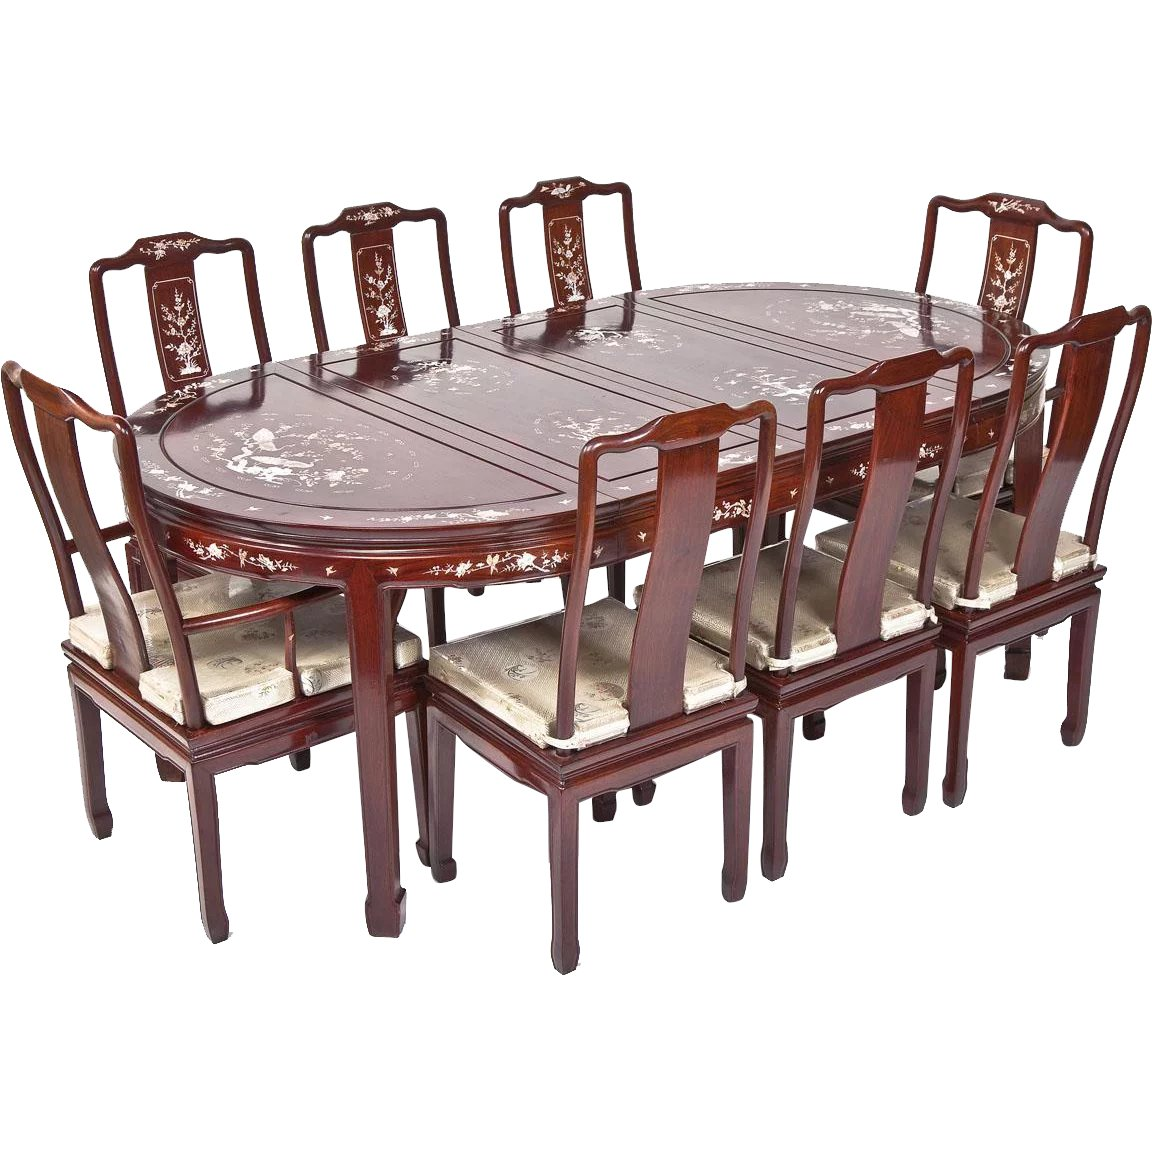 Vintage Chinese Mother Of Pearl Inlaid R Wood Dining Set 2 Arm Chairs TimelessTokensDE